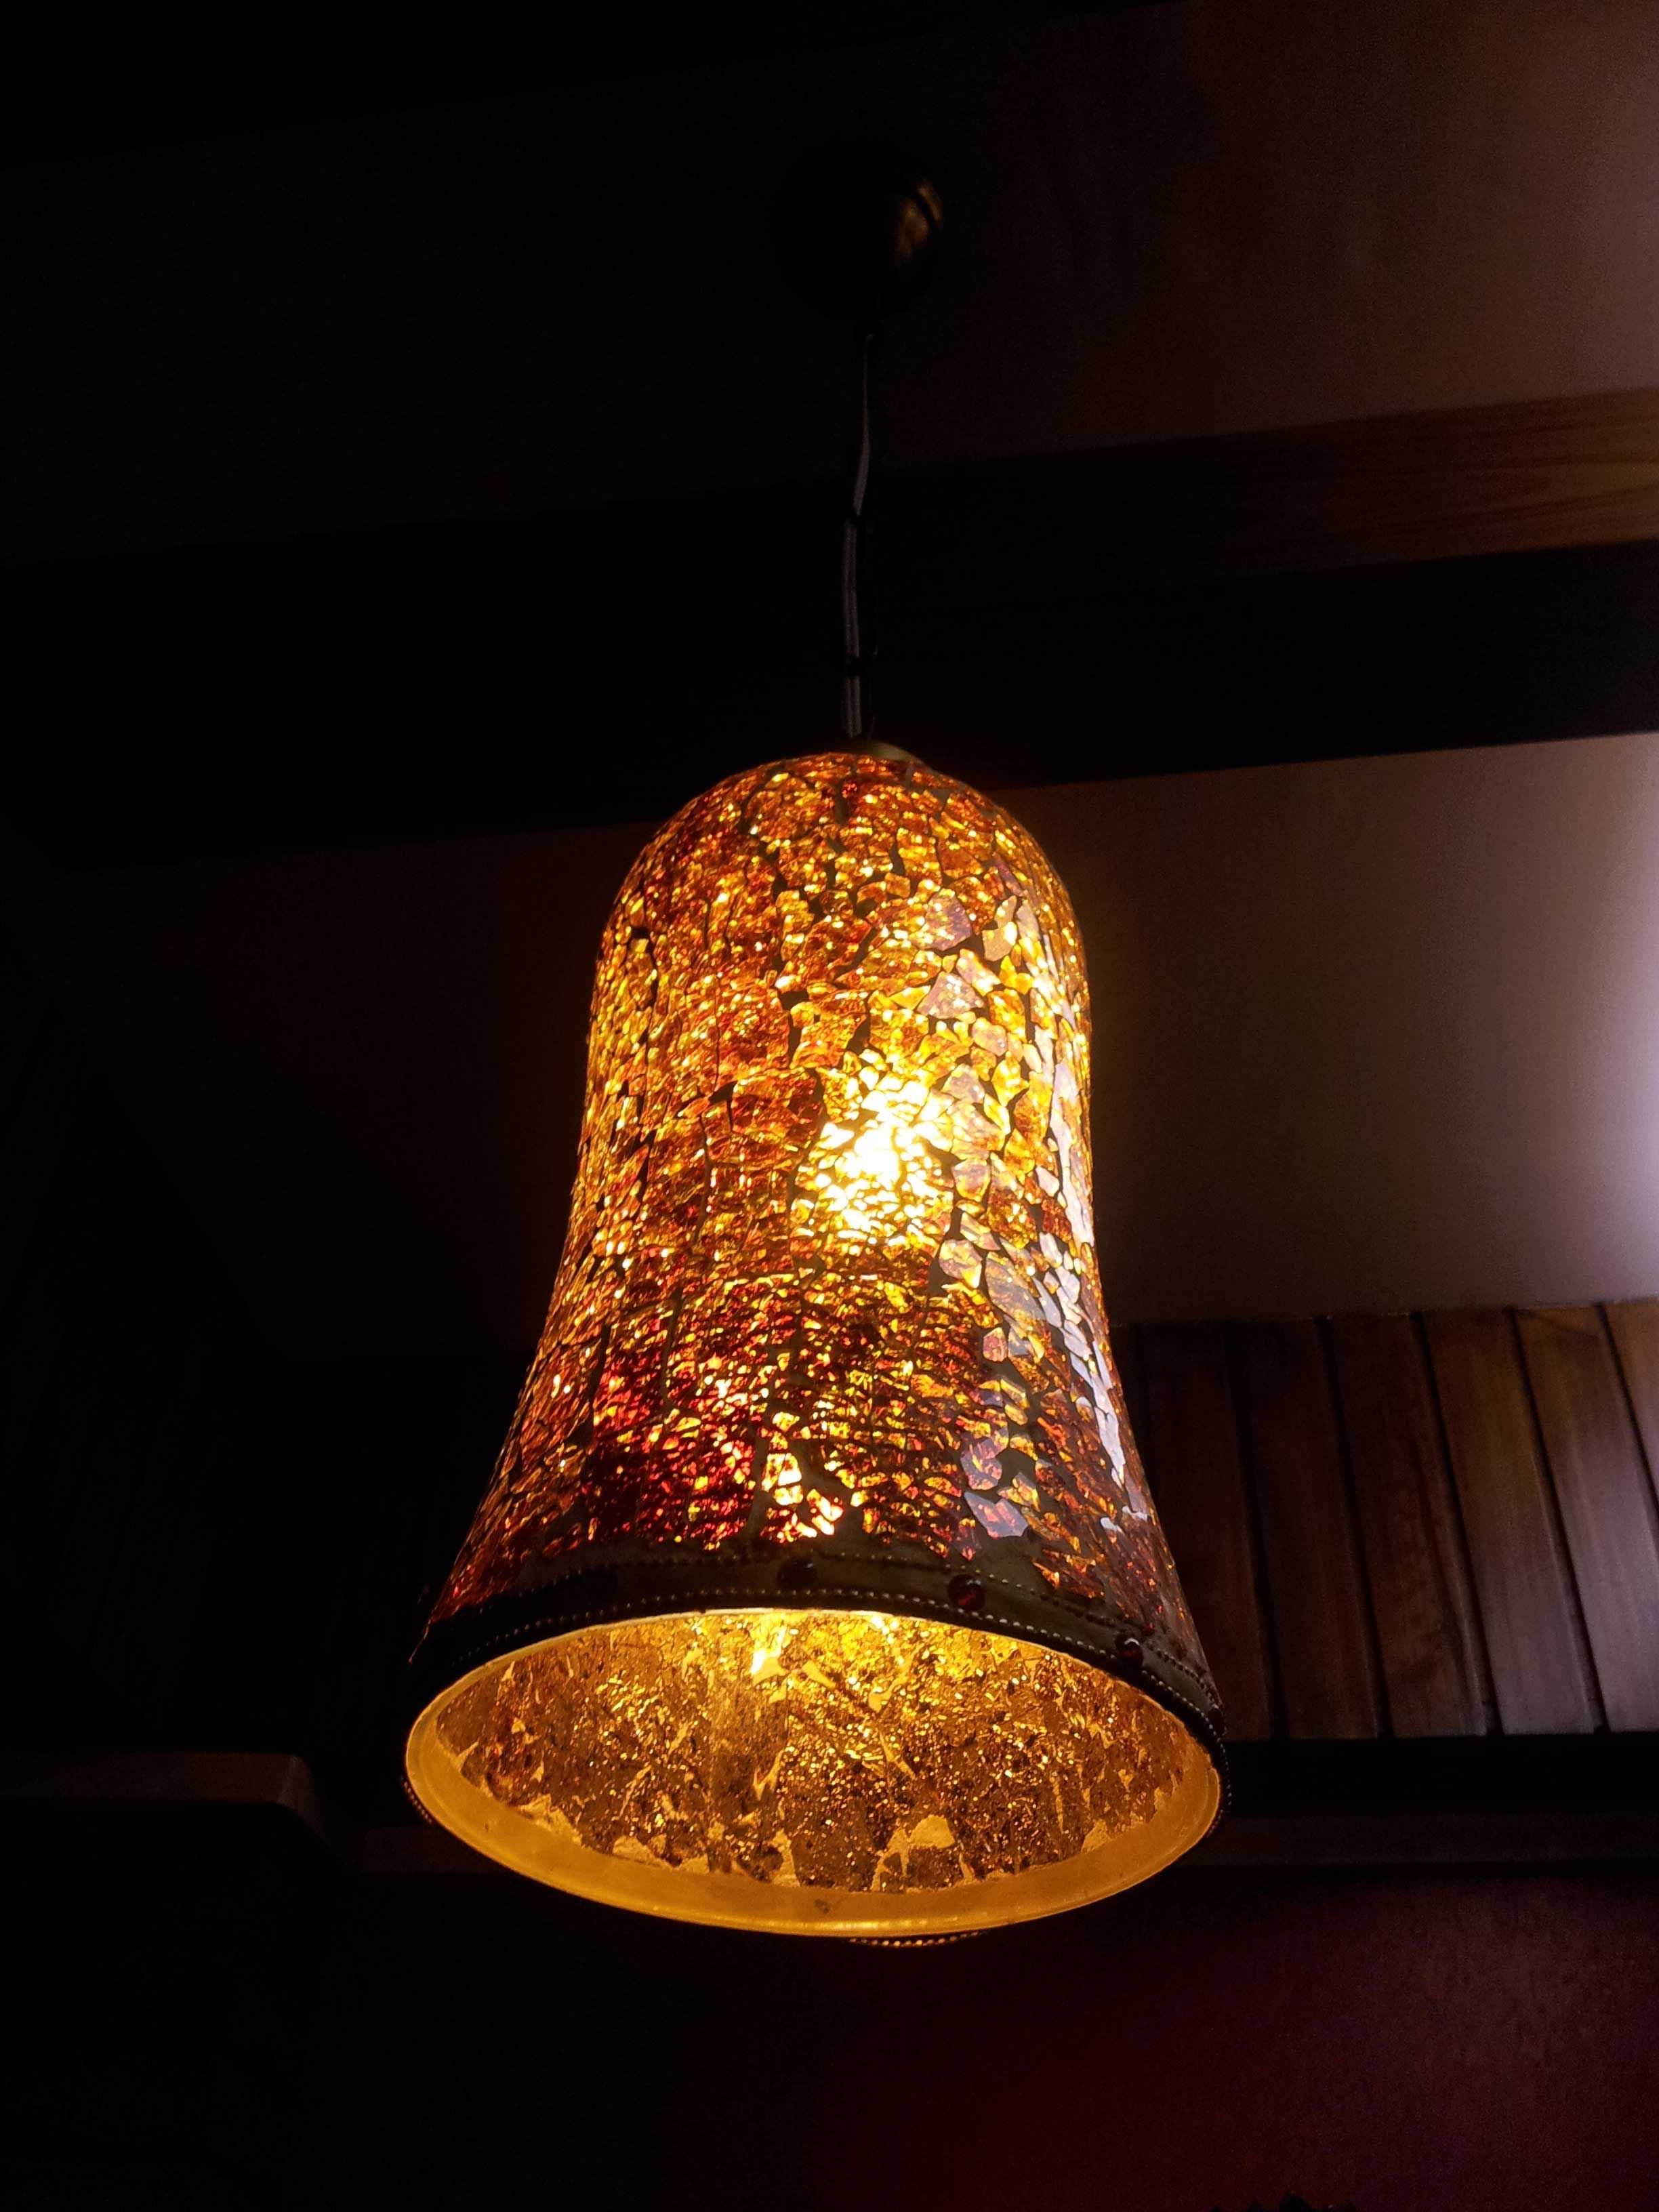 diffused lighting fixtures. Diffuse Light. Diffused Lighting Fixtures U